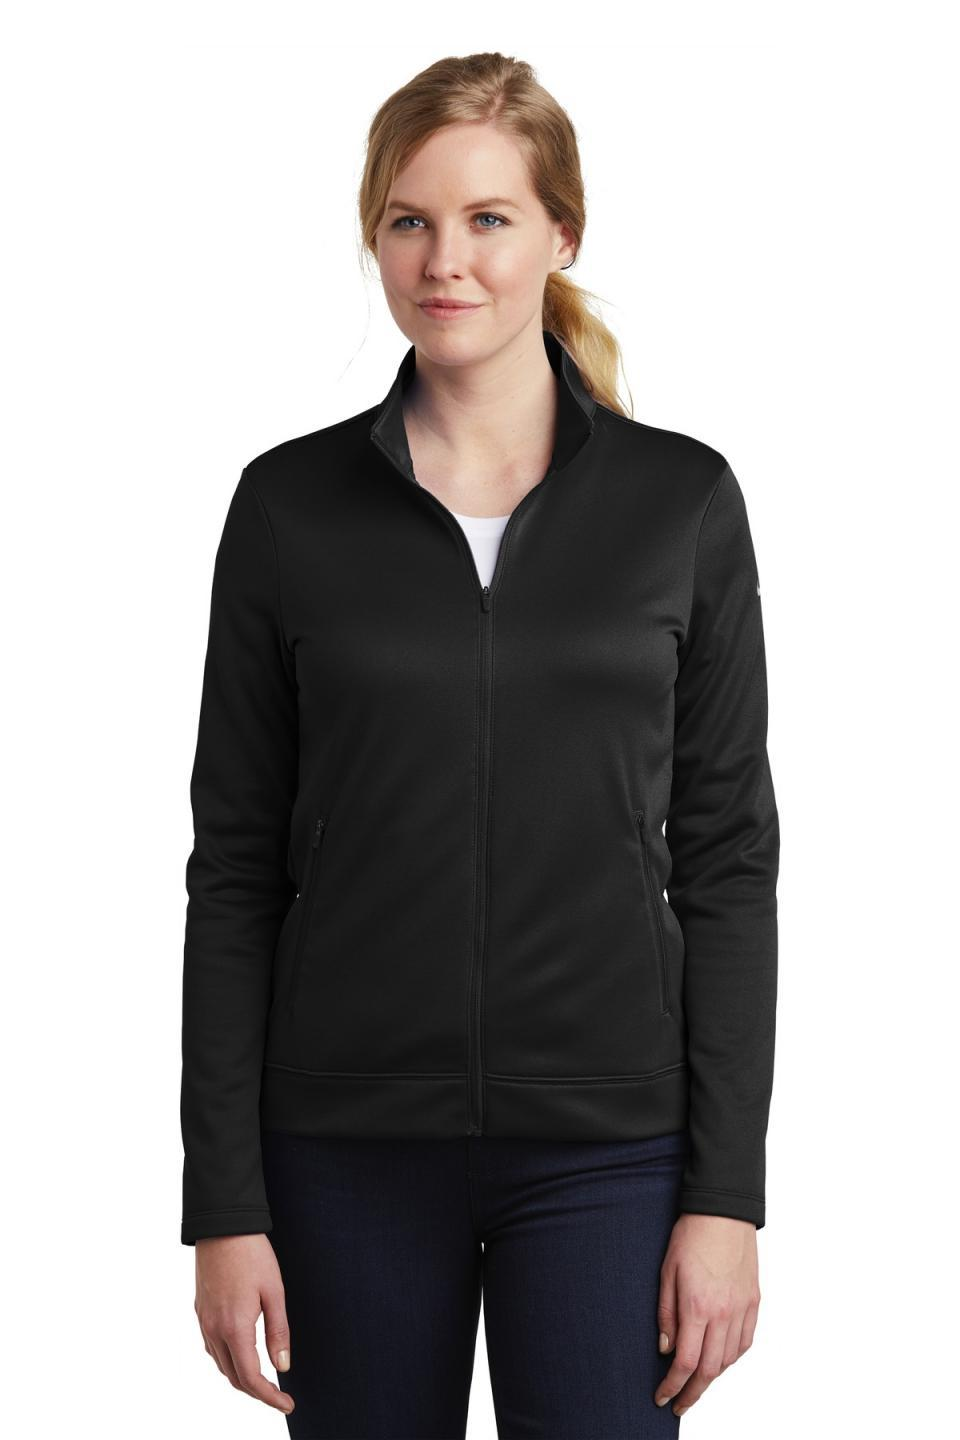 Nike Women's Therma-FIT Full-Zip Fleece